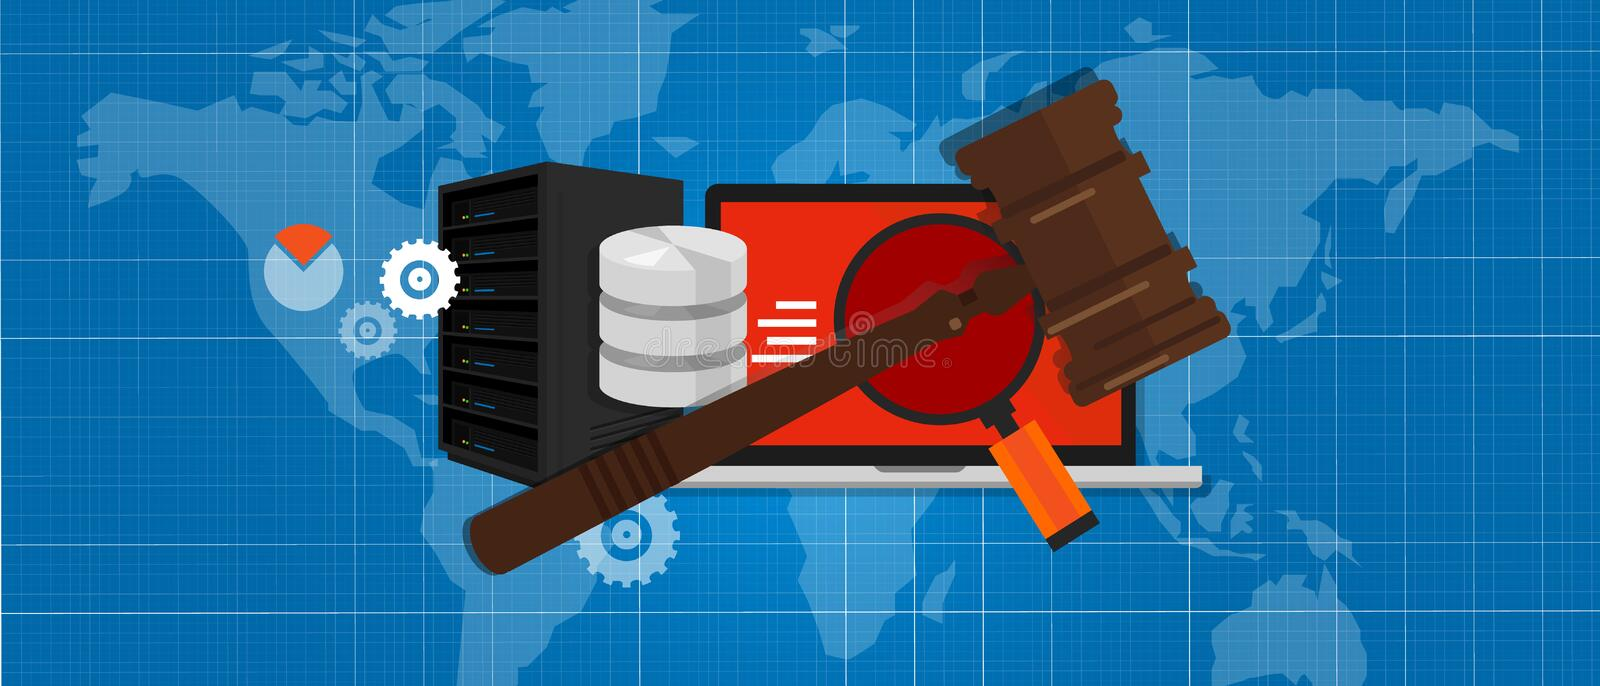 Information technology internet digital justice law verdict case legal gavel wooden hammer crime court auction symbol vector illustration